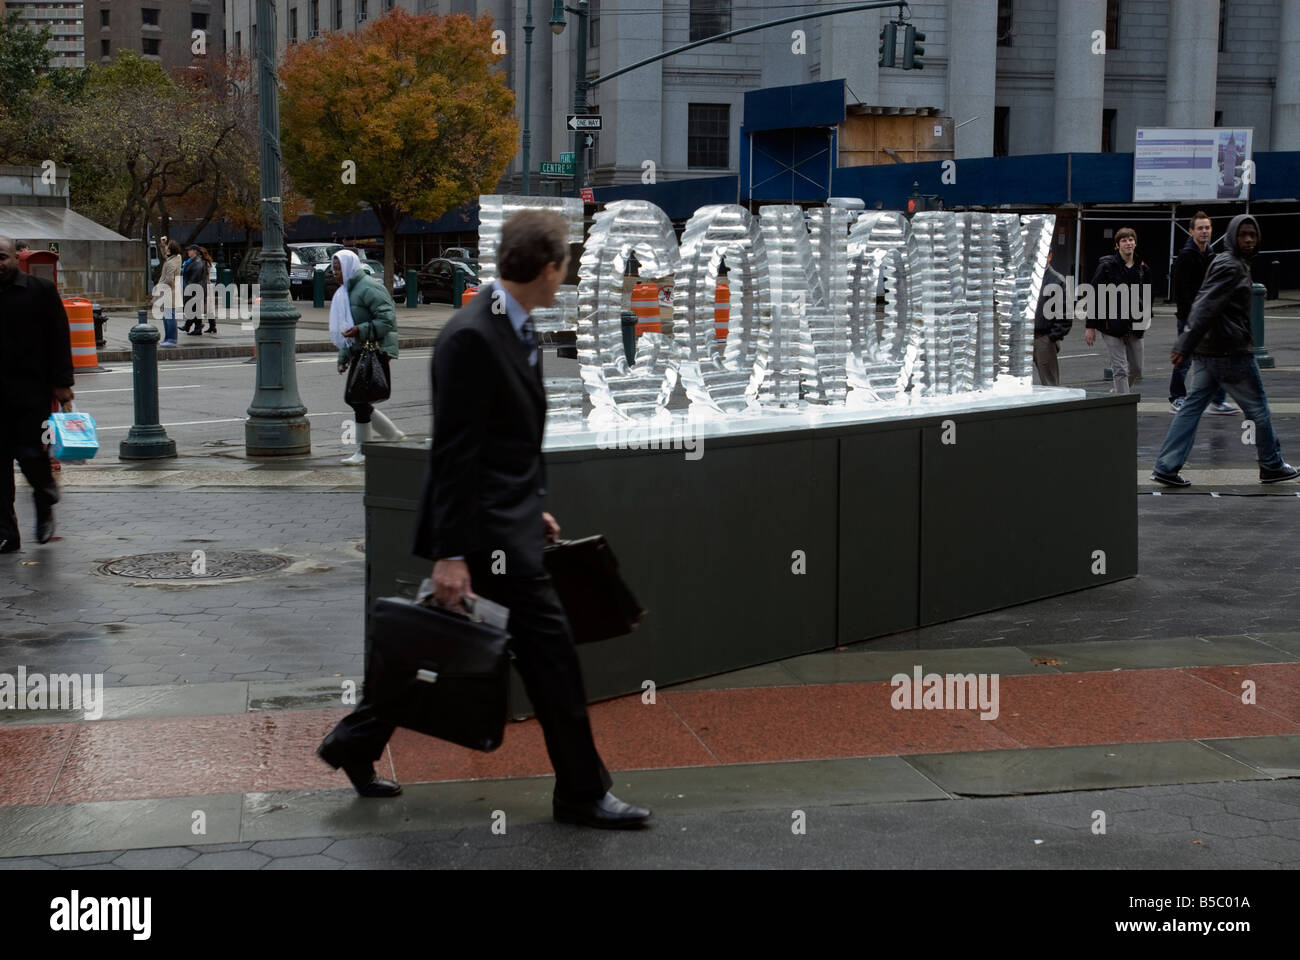 An ice sculpture of the word economy entitled Main Street Meltdown melts in Foley Square in New York - Stock Image